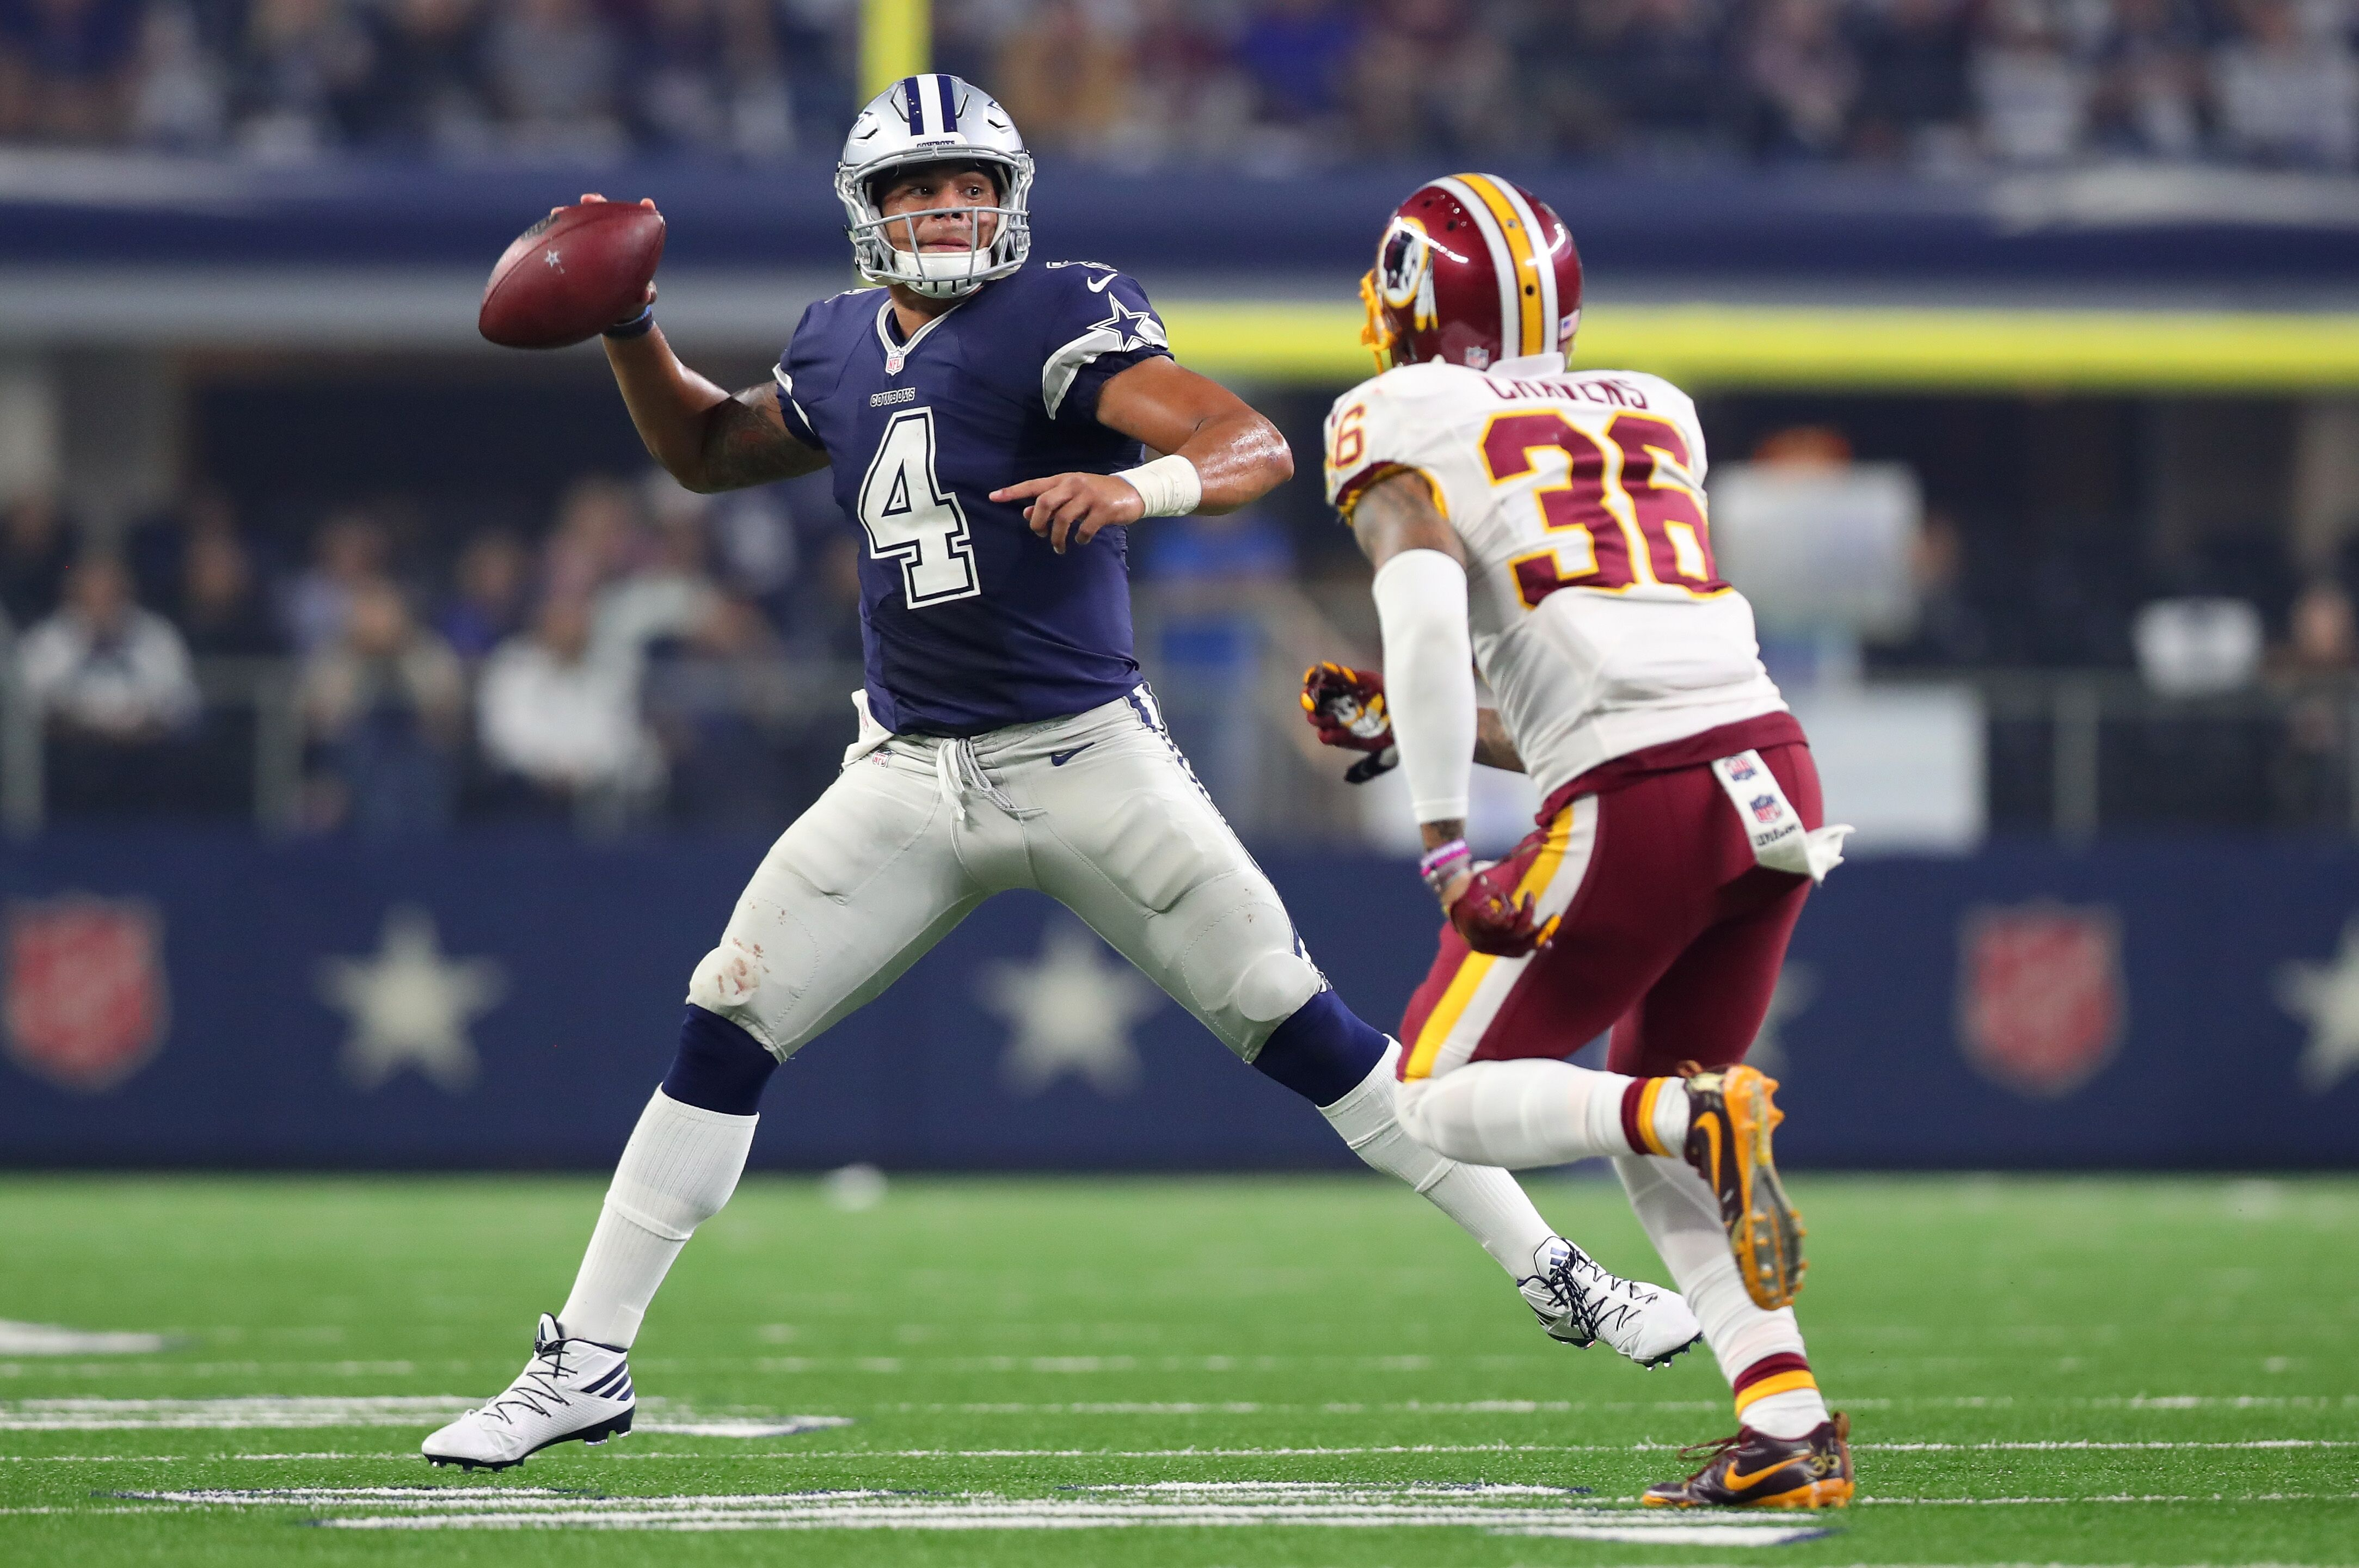 625635578-washington-redskins-v-dallas-cowboys.jpg